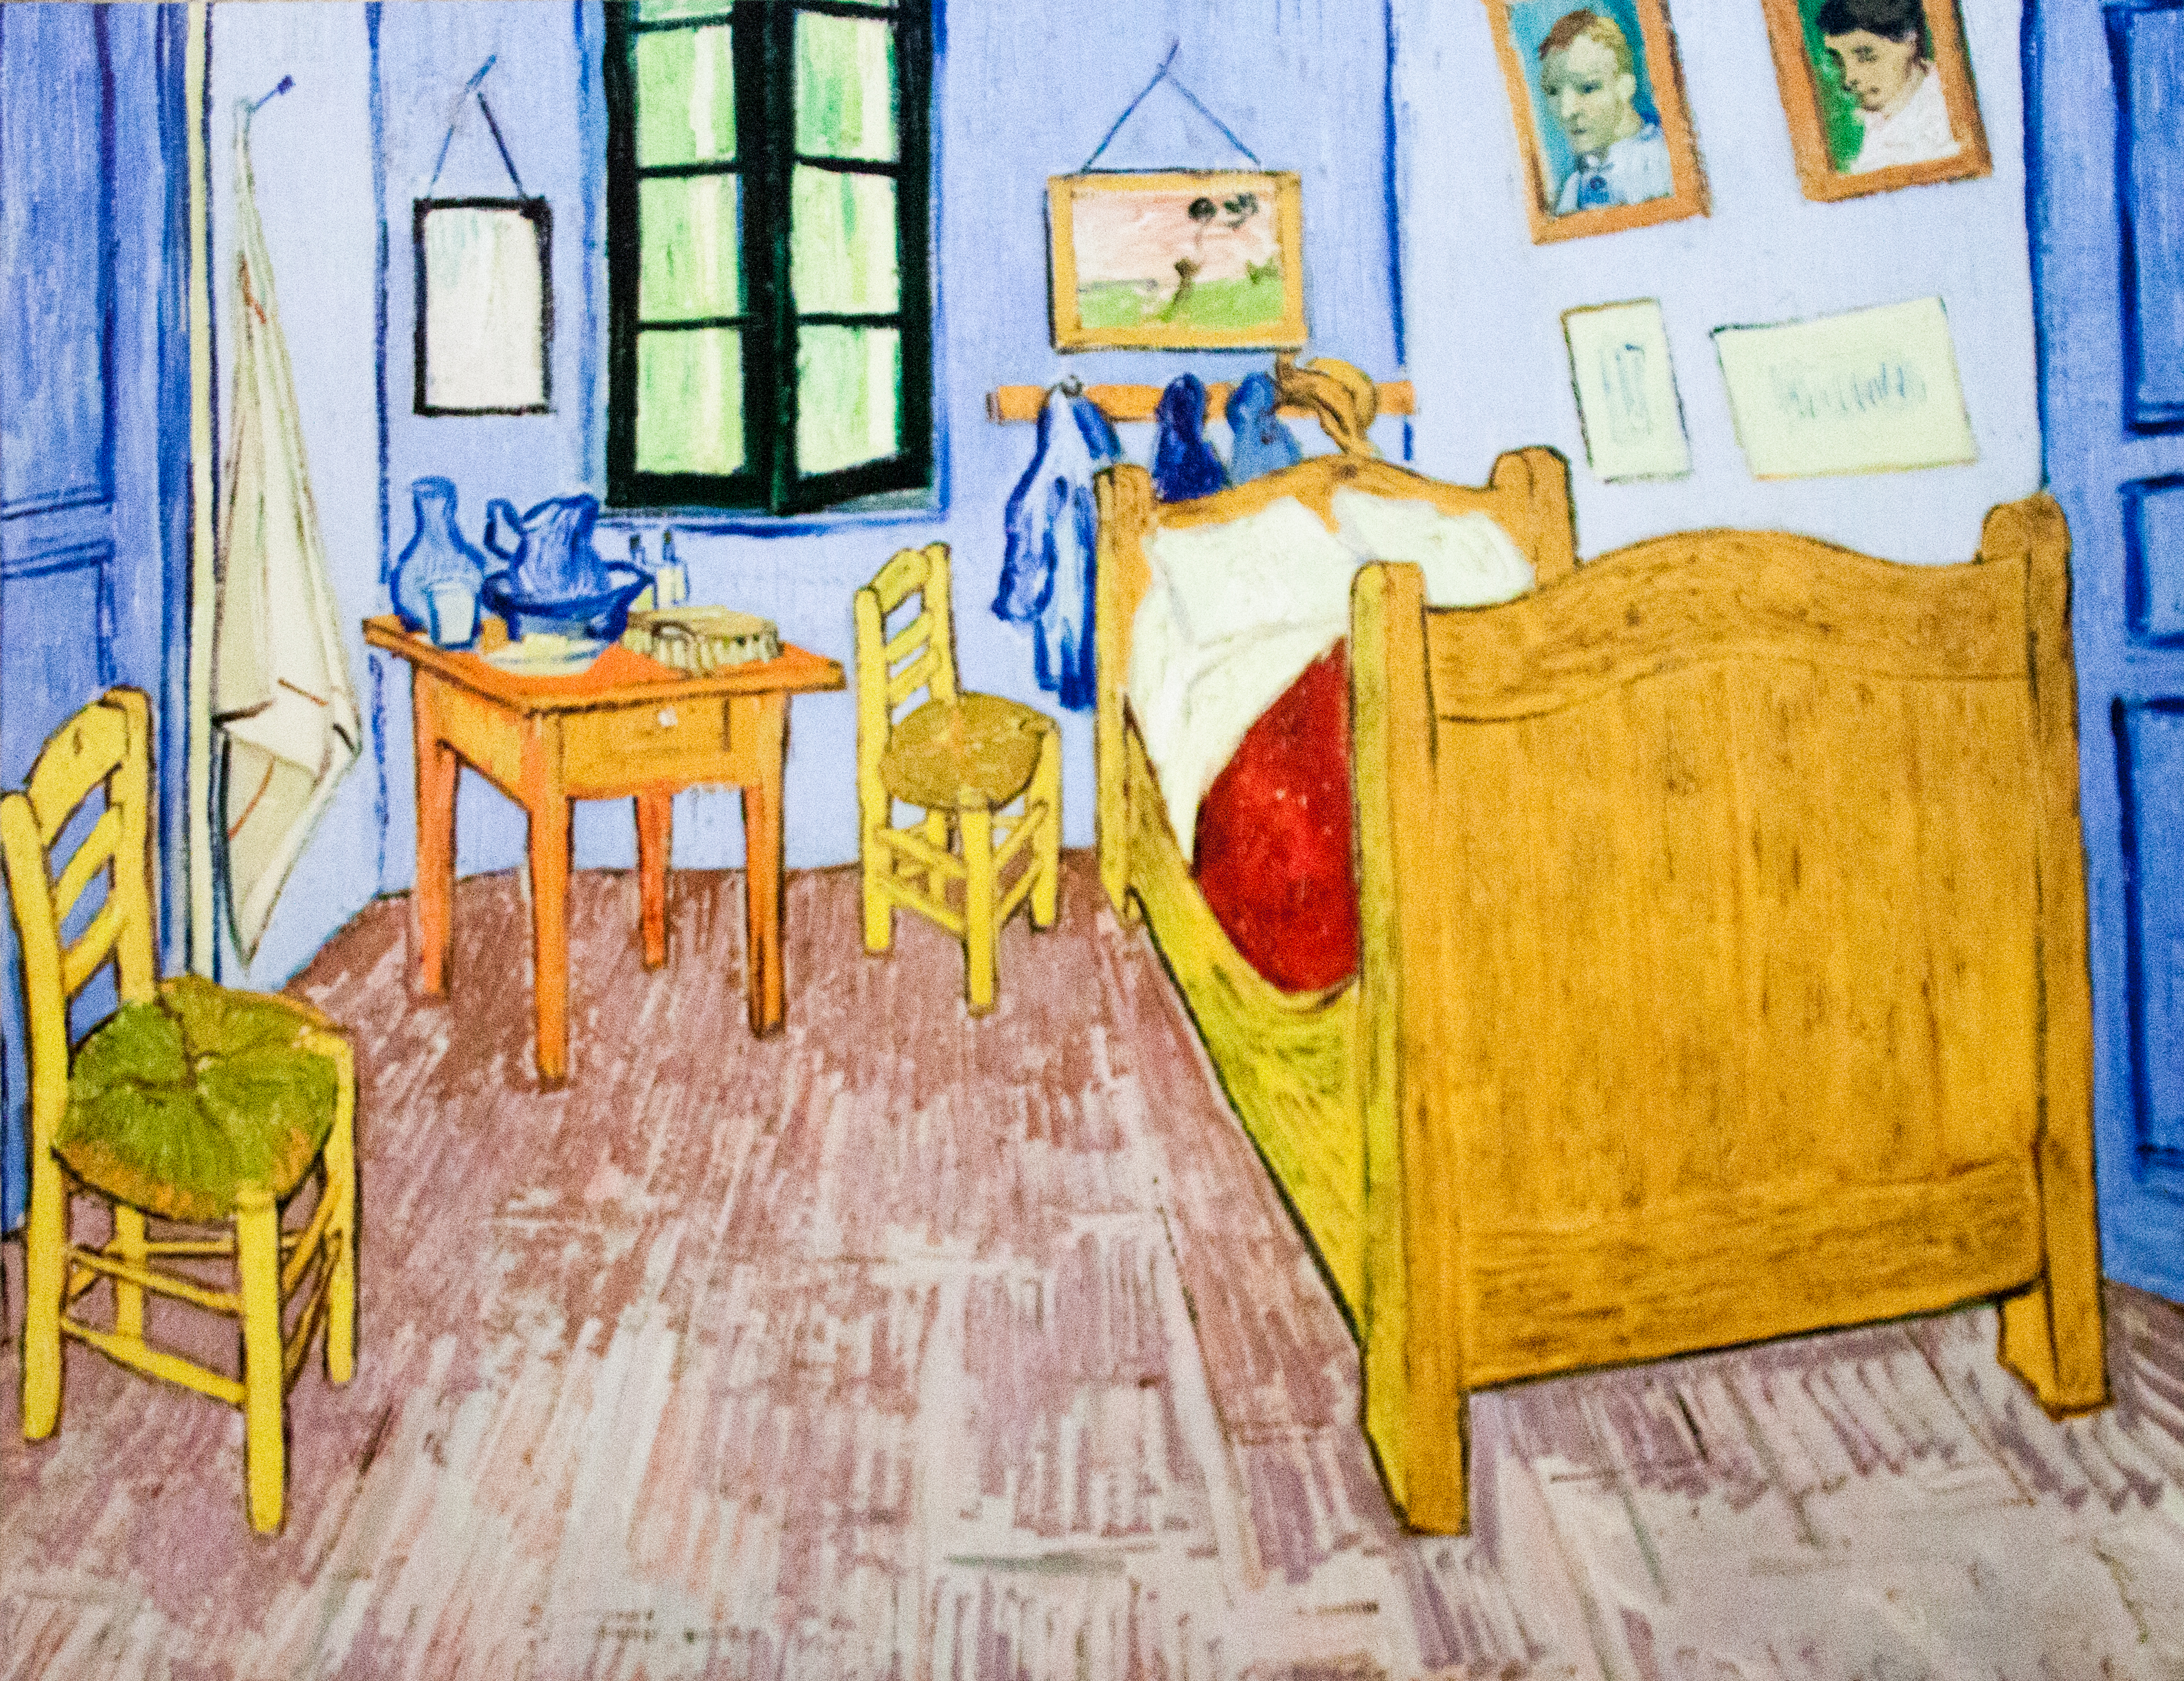 file:vincent's bedroom in arles - my dream - wikimedia commons